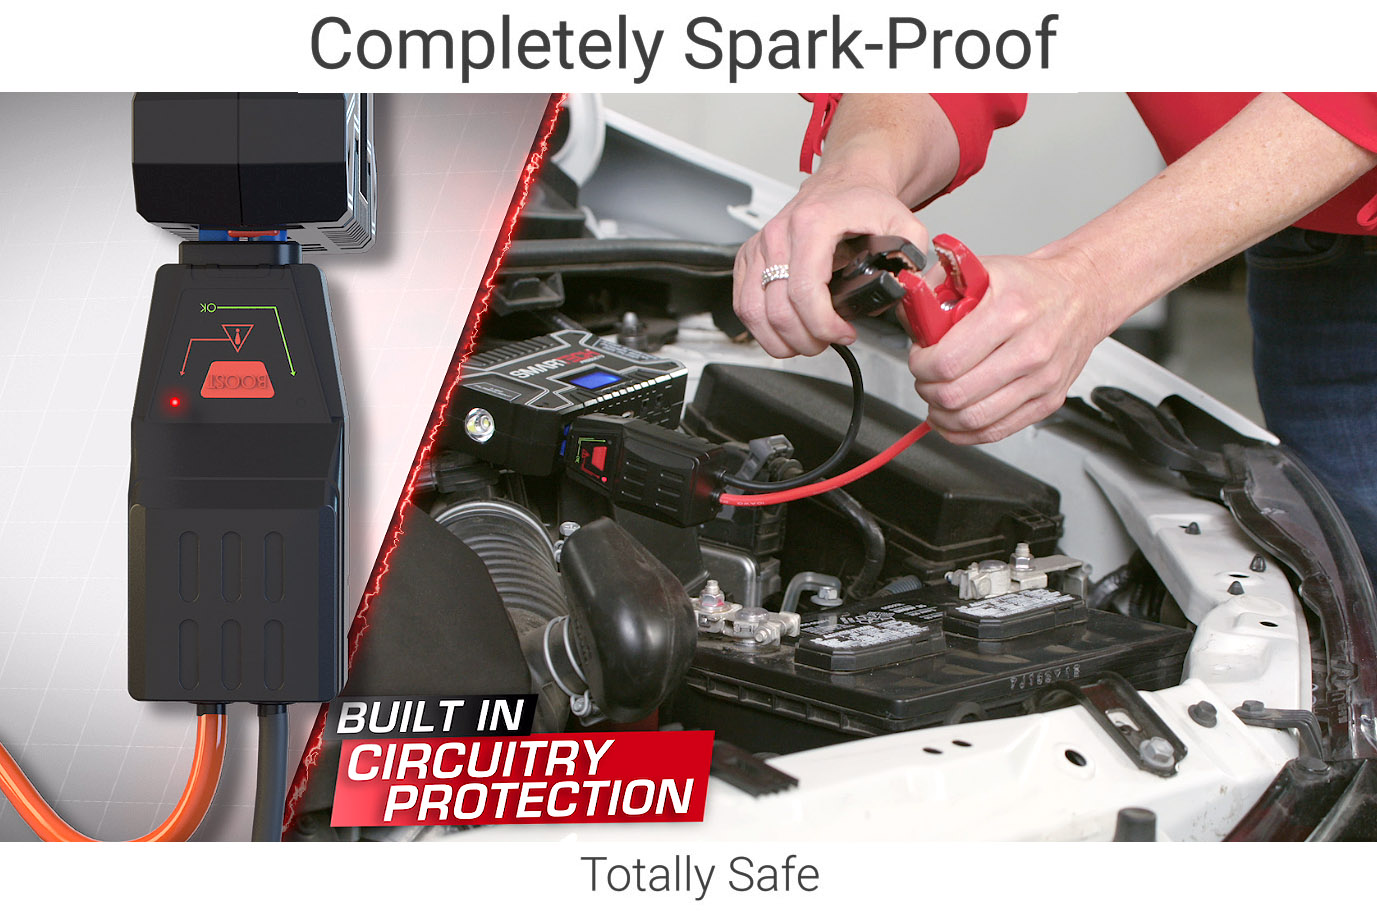 Smartech 5000P - Completely Spark Proof